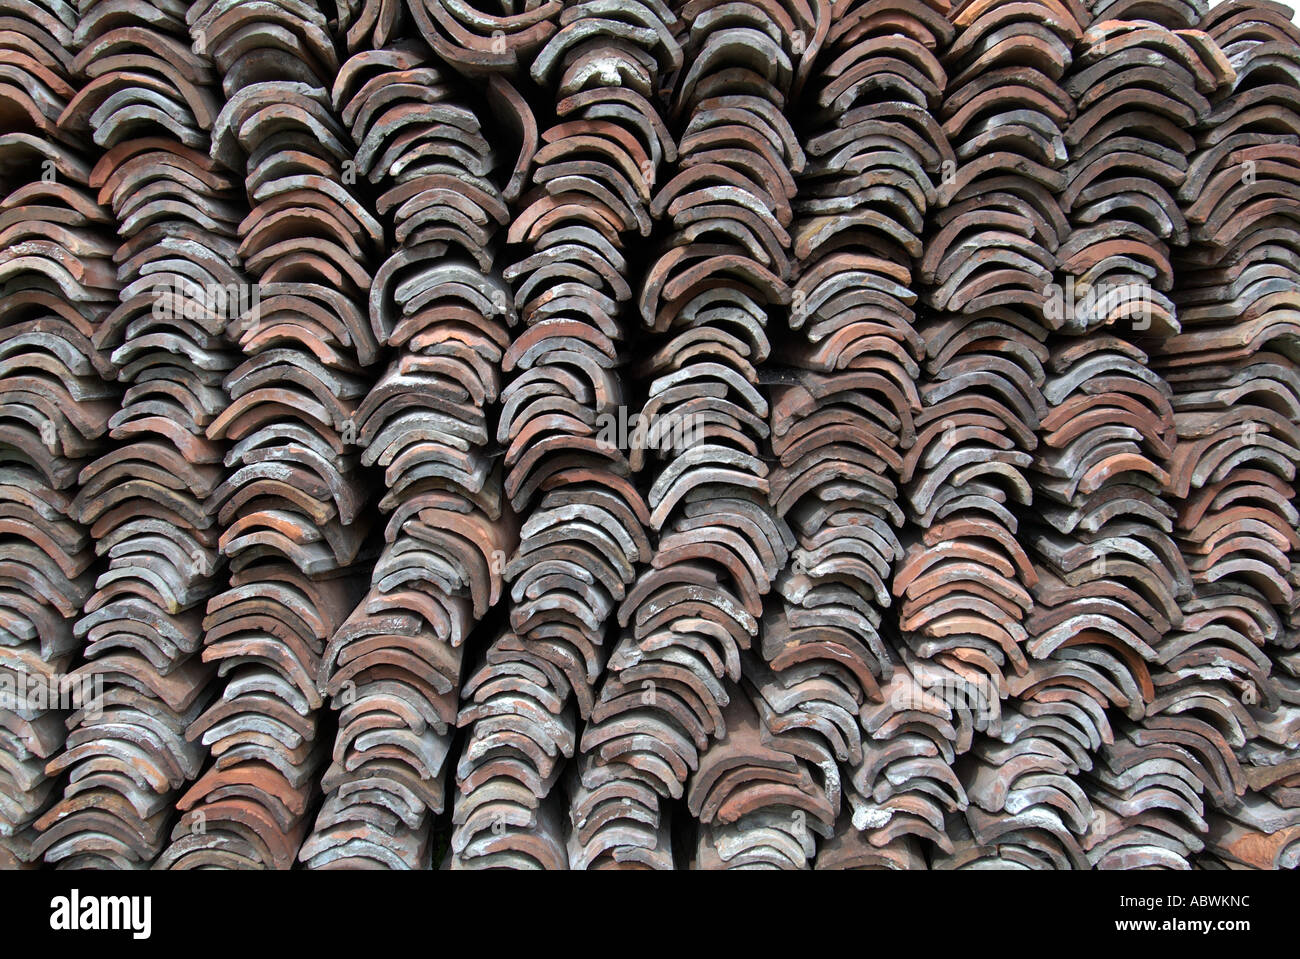 Stock Photo   Terracotta Antique Old Reclaimed Stacked Roof Tile Curved  Semi Circular Arc Pattern Texture Bulgaria Peoples Republic Narodna